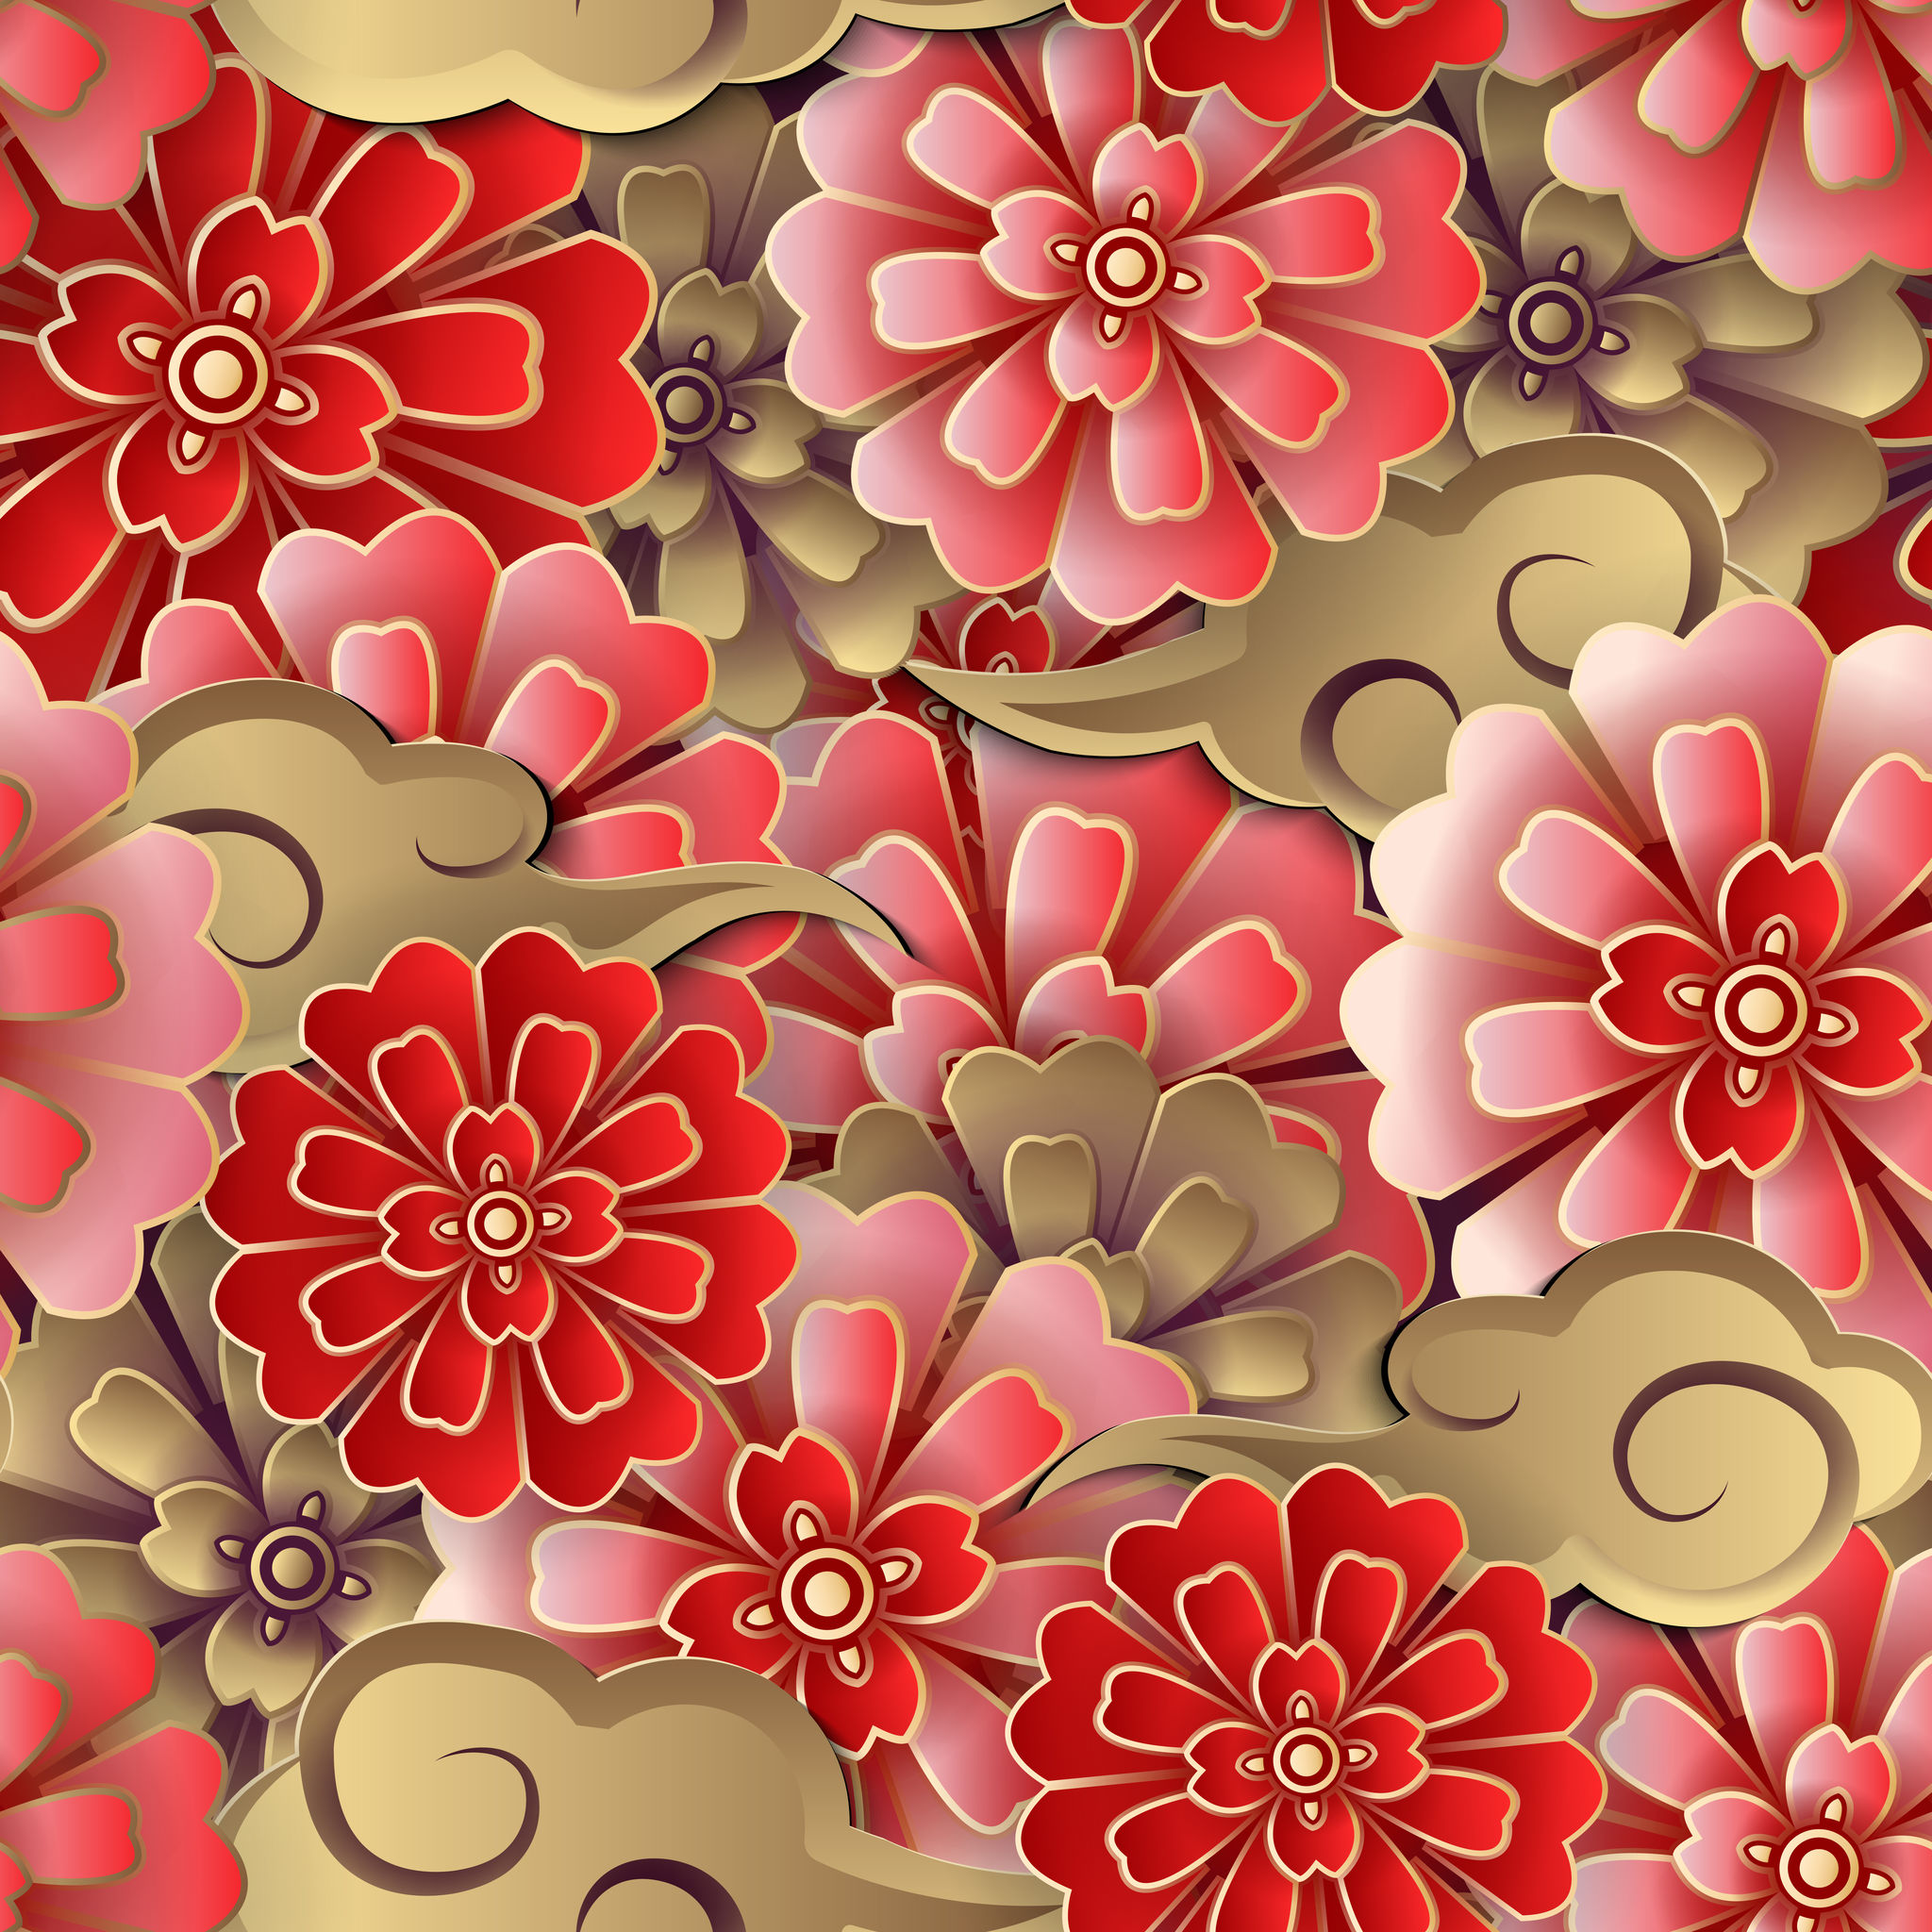 Chinese pink red gold flower and spiral cloud seamless pattern background